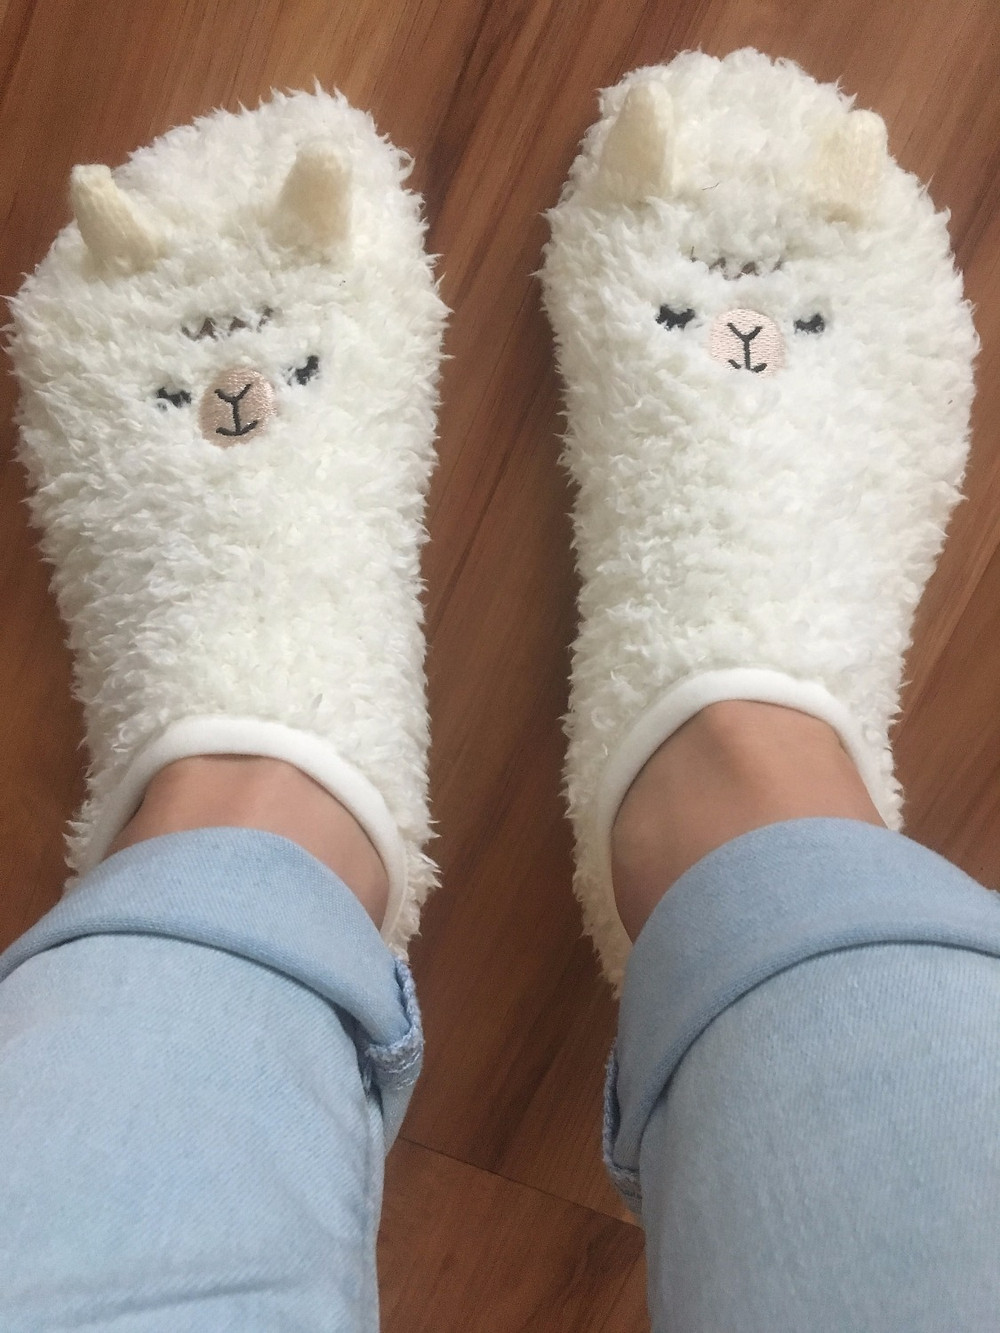 These fuzzy llama socks came from the Shibuya Station in Tokyo, Japan